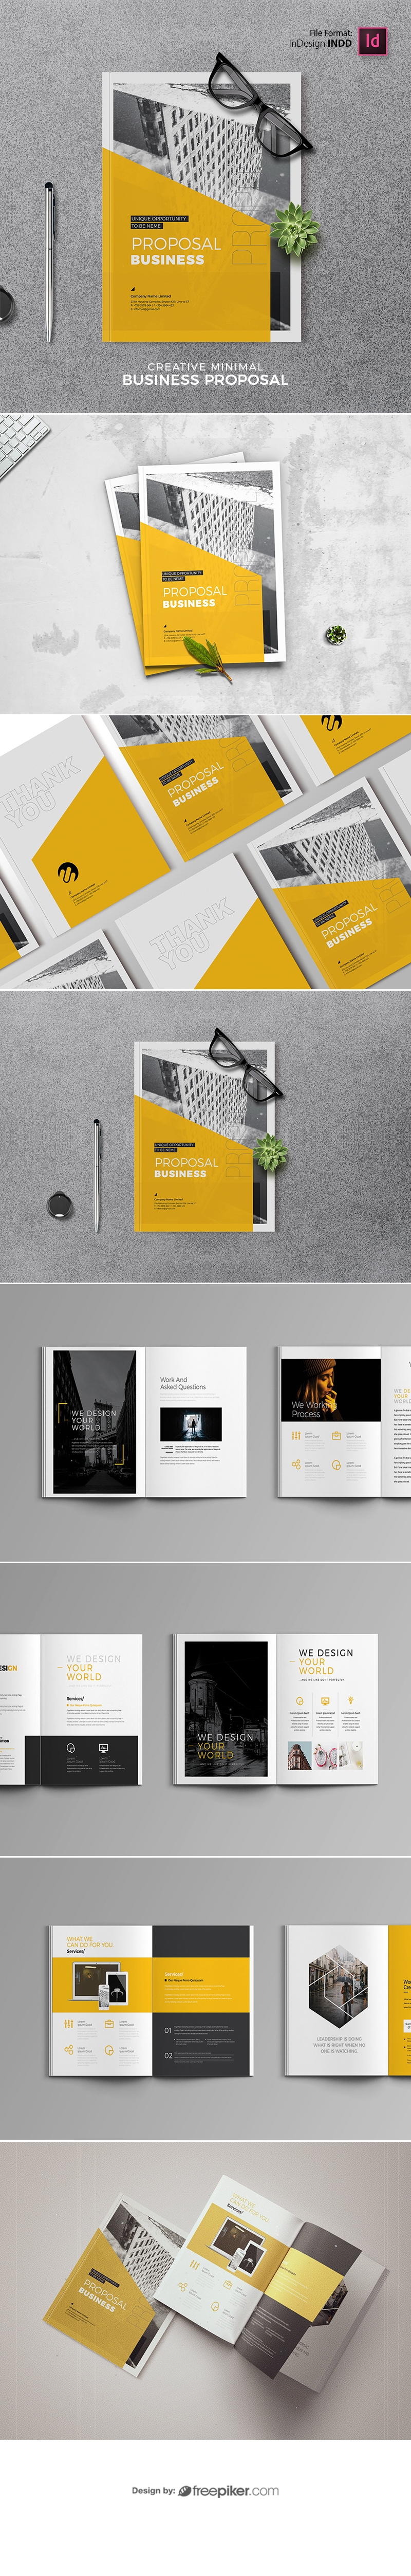 Minimal Project Proposal Yellow Accent